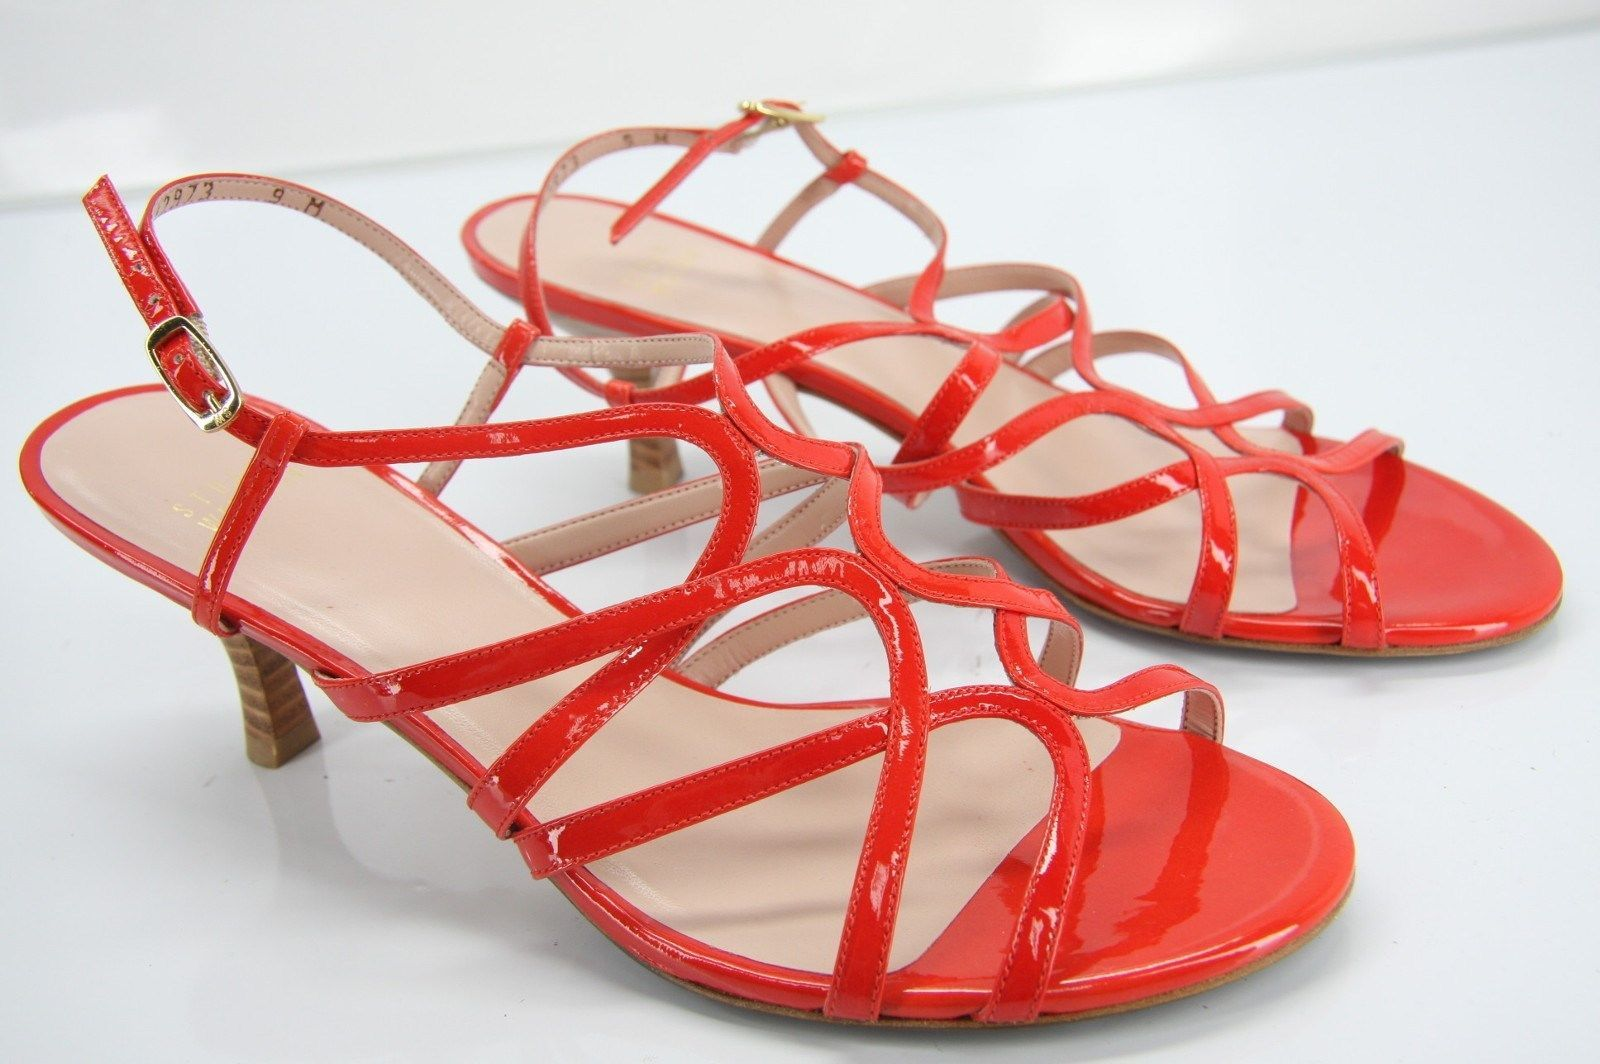 Stuart Weitzman Turning Red Patent Caged Strappy Sandals Size 9 heels New$355 Sz